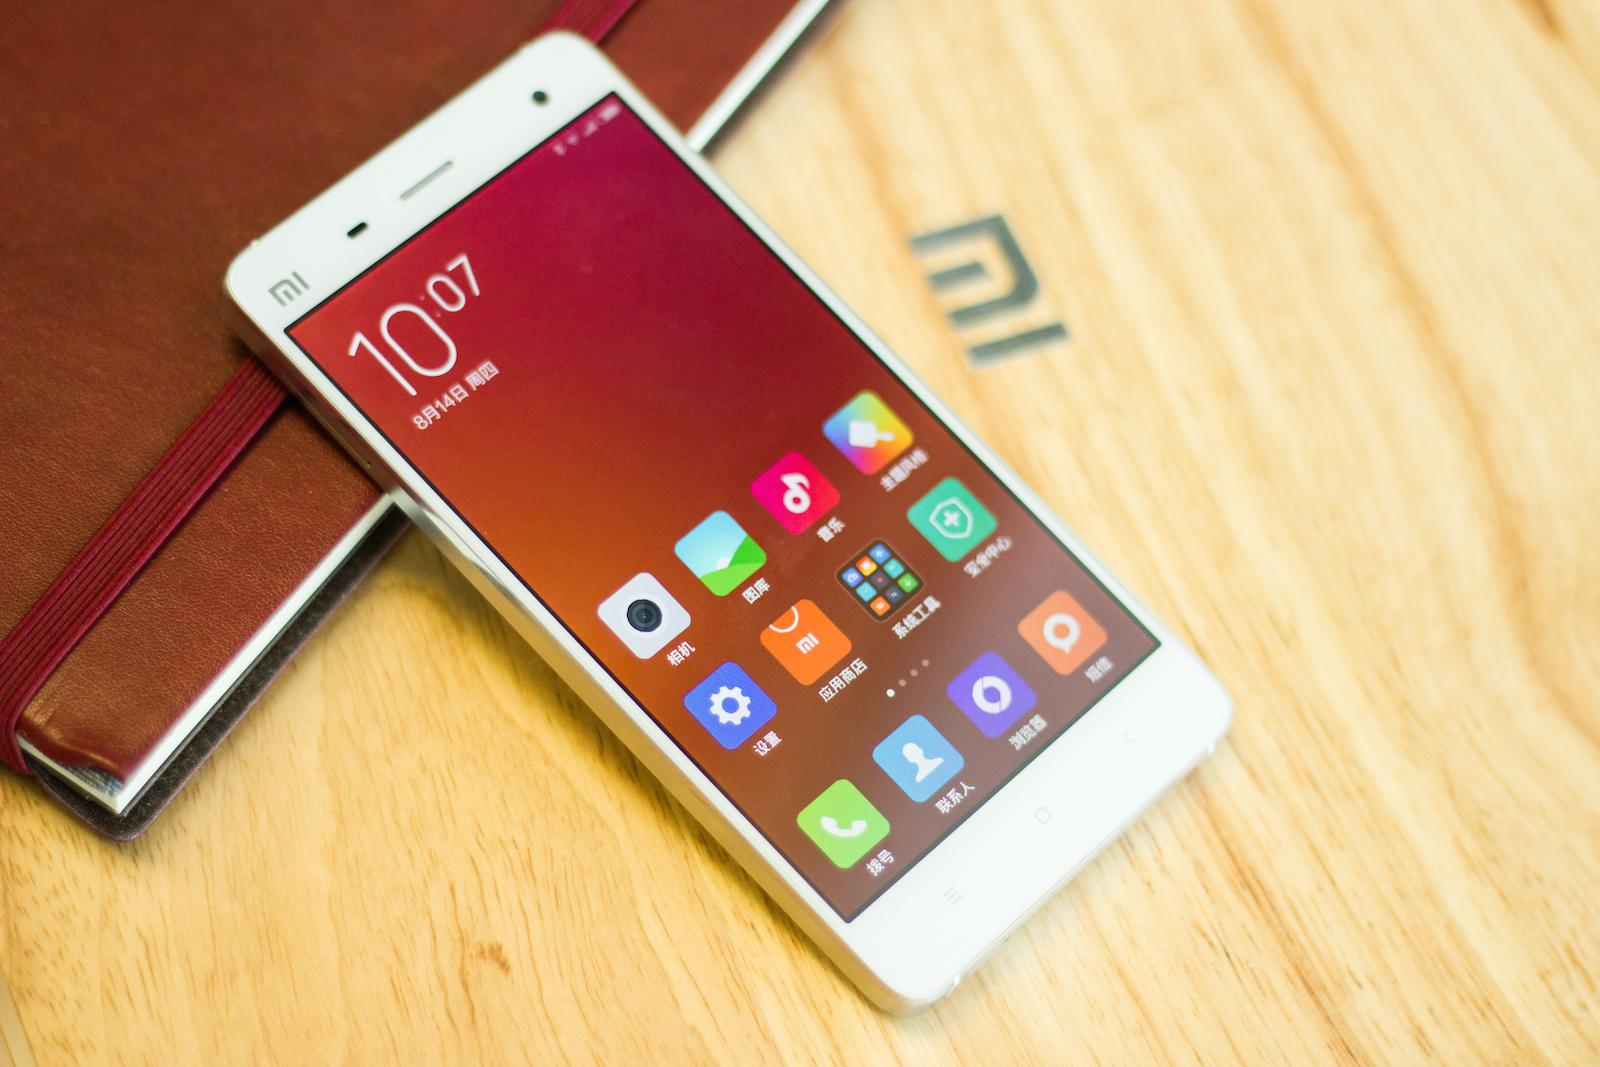 Xiaomi Mi 5 Qualcomm Snapdragon 820